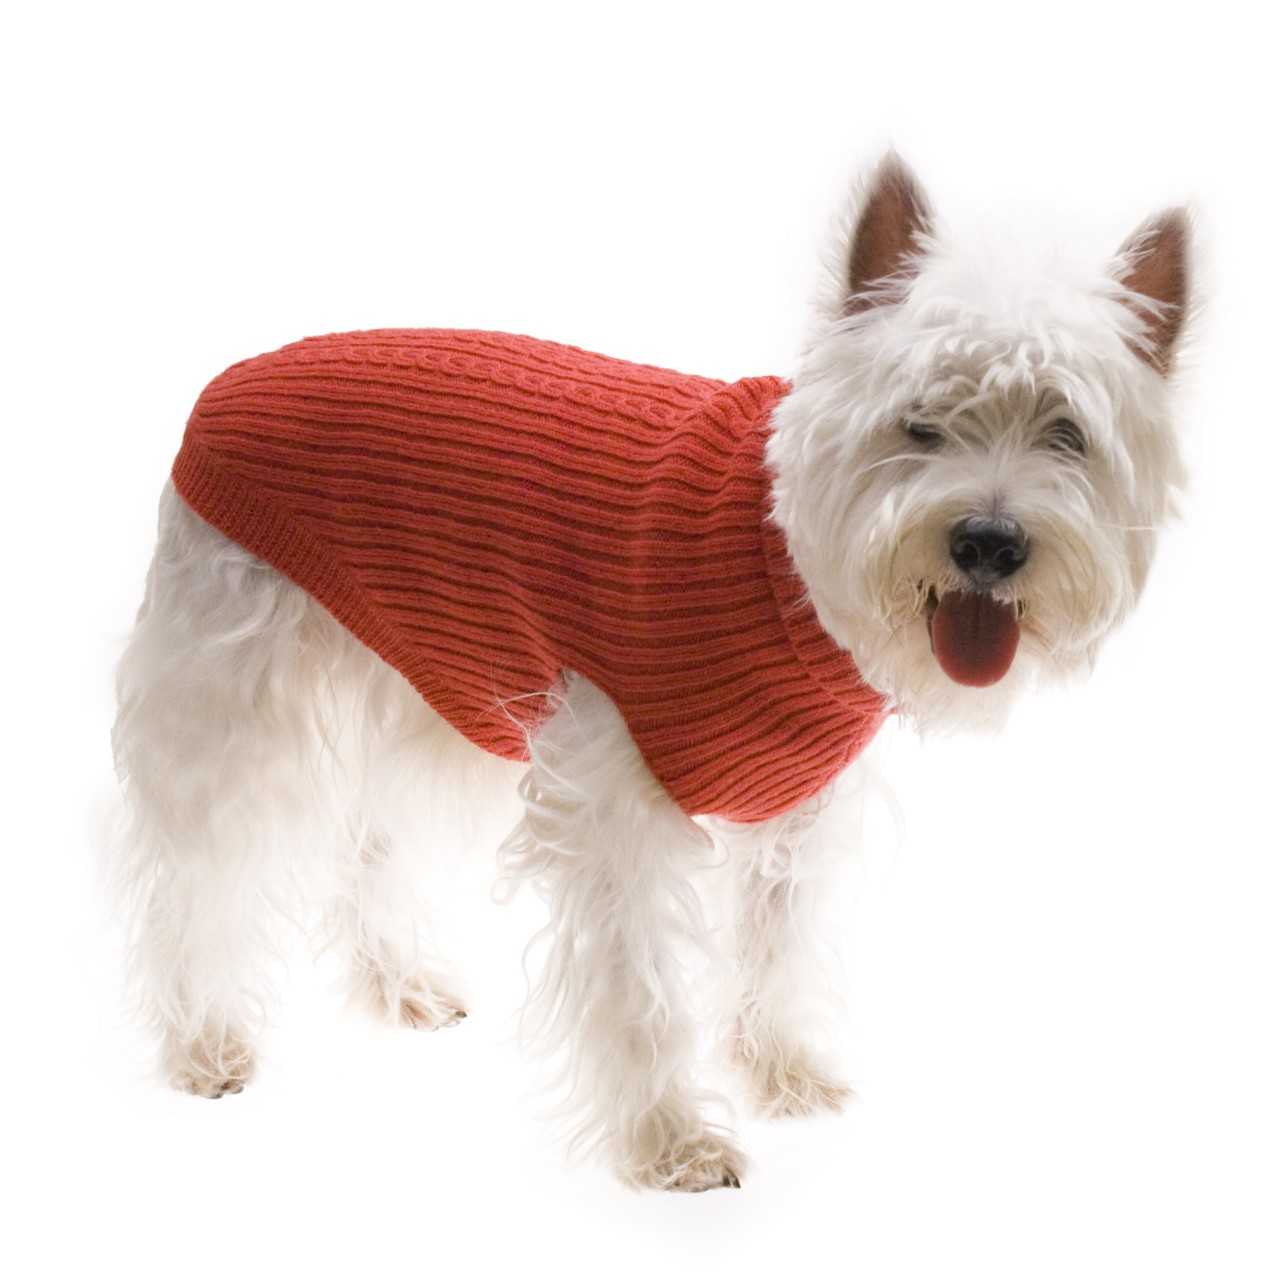 Designer Dog Jumpers photo - 1